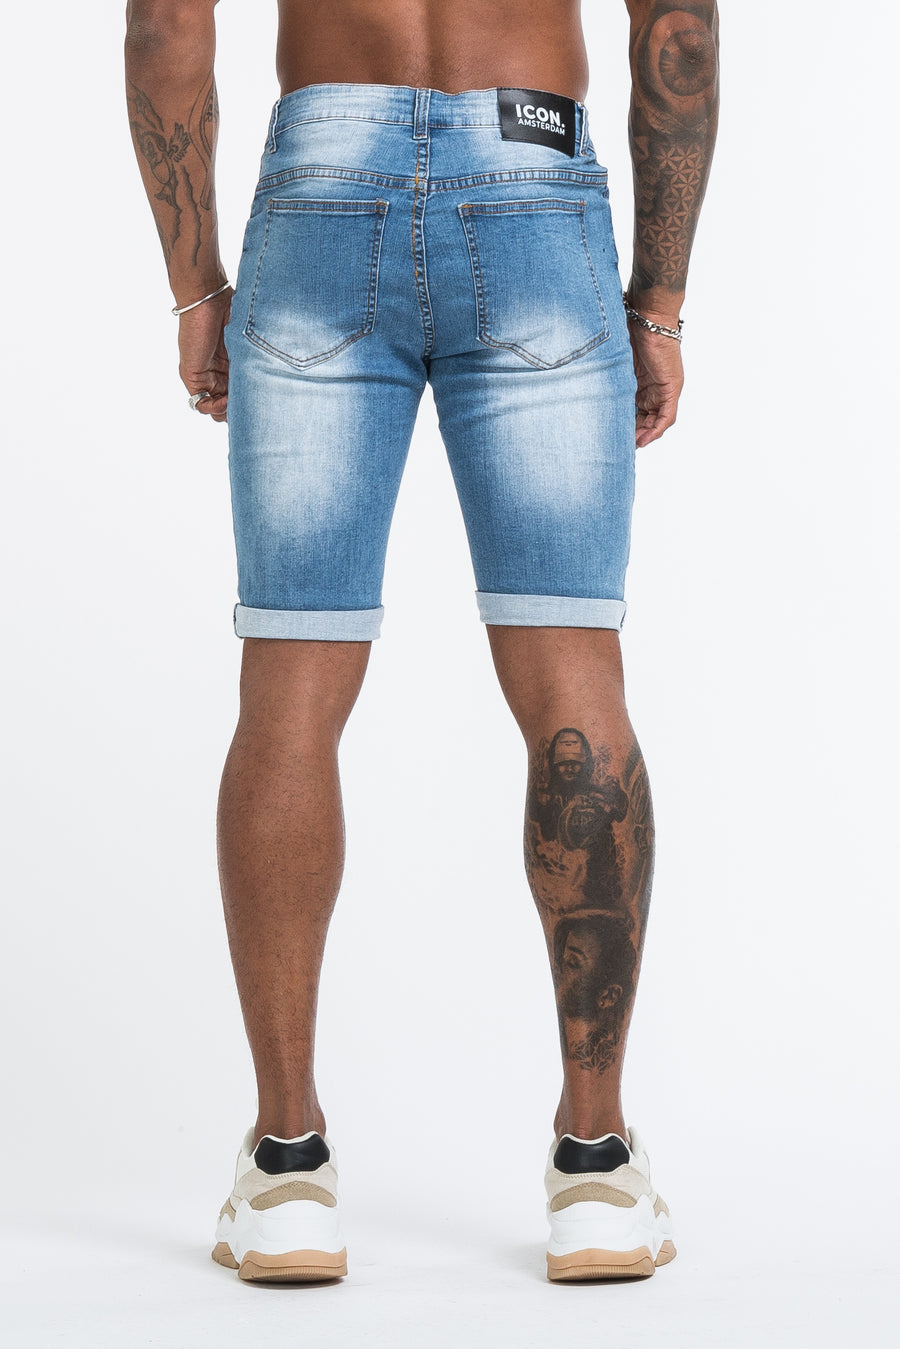 THE MEDUSA SHORTS - LIGHT BLUE - ICON. AMSTERDAM